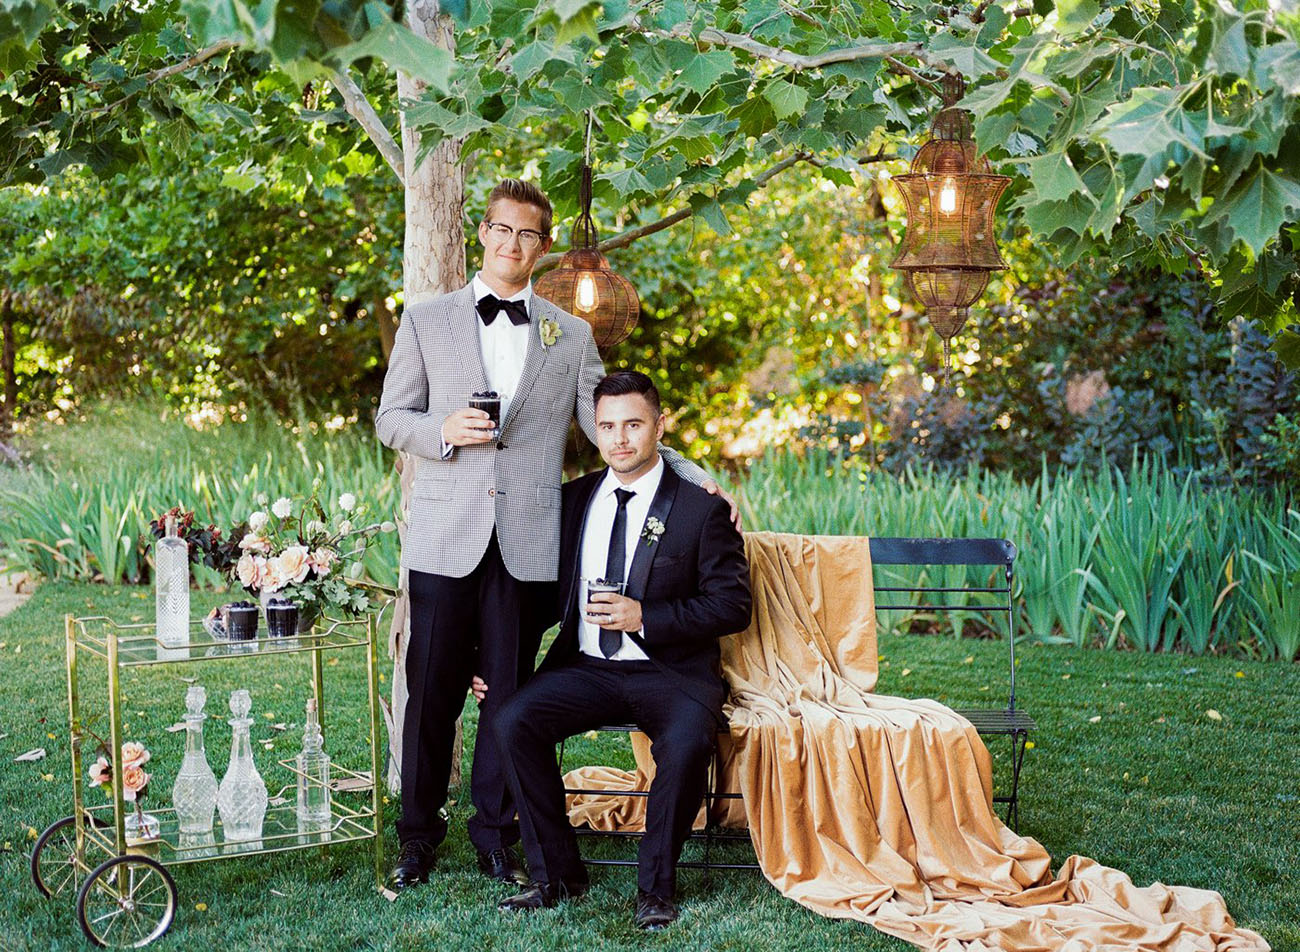 This moody luxe wedding shoot was styled with velvet, gorgeous desserts and various chic touches